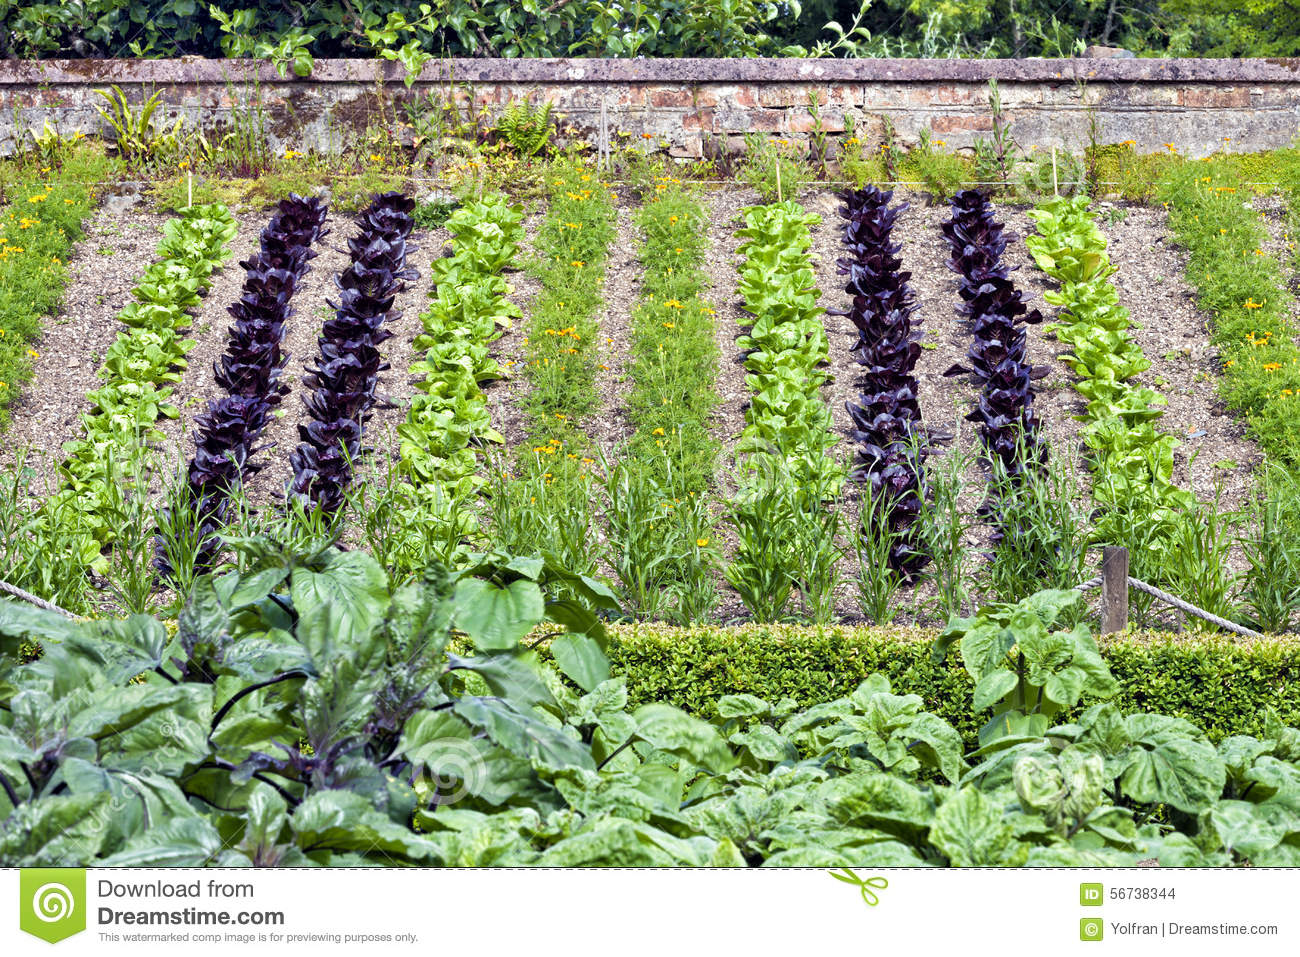 Merveilleux Vegetable Garden With Young Greens On A Slope